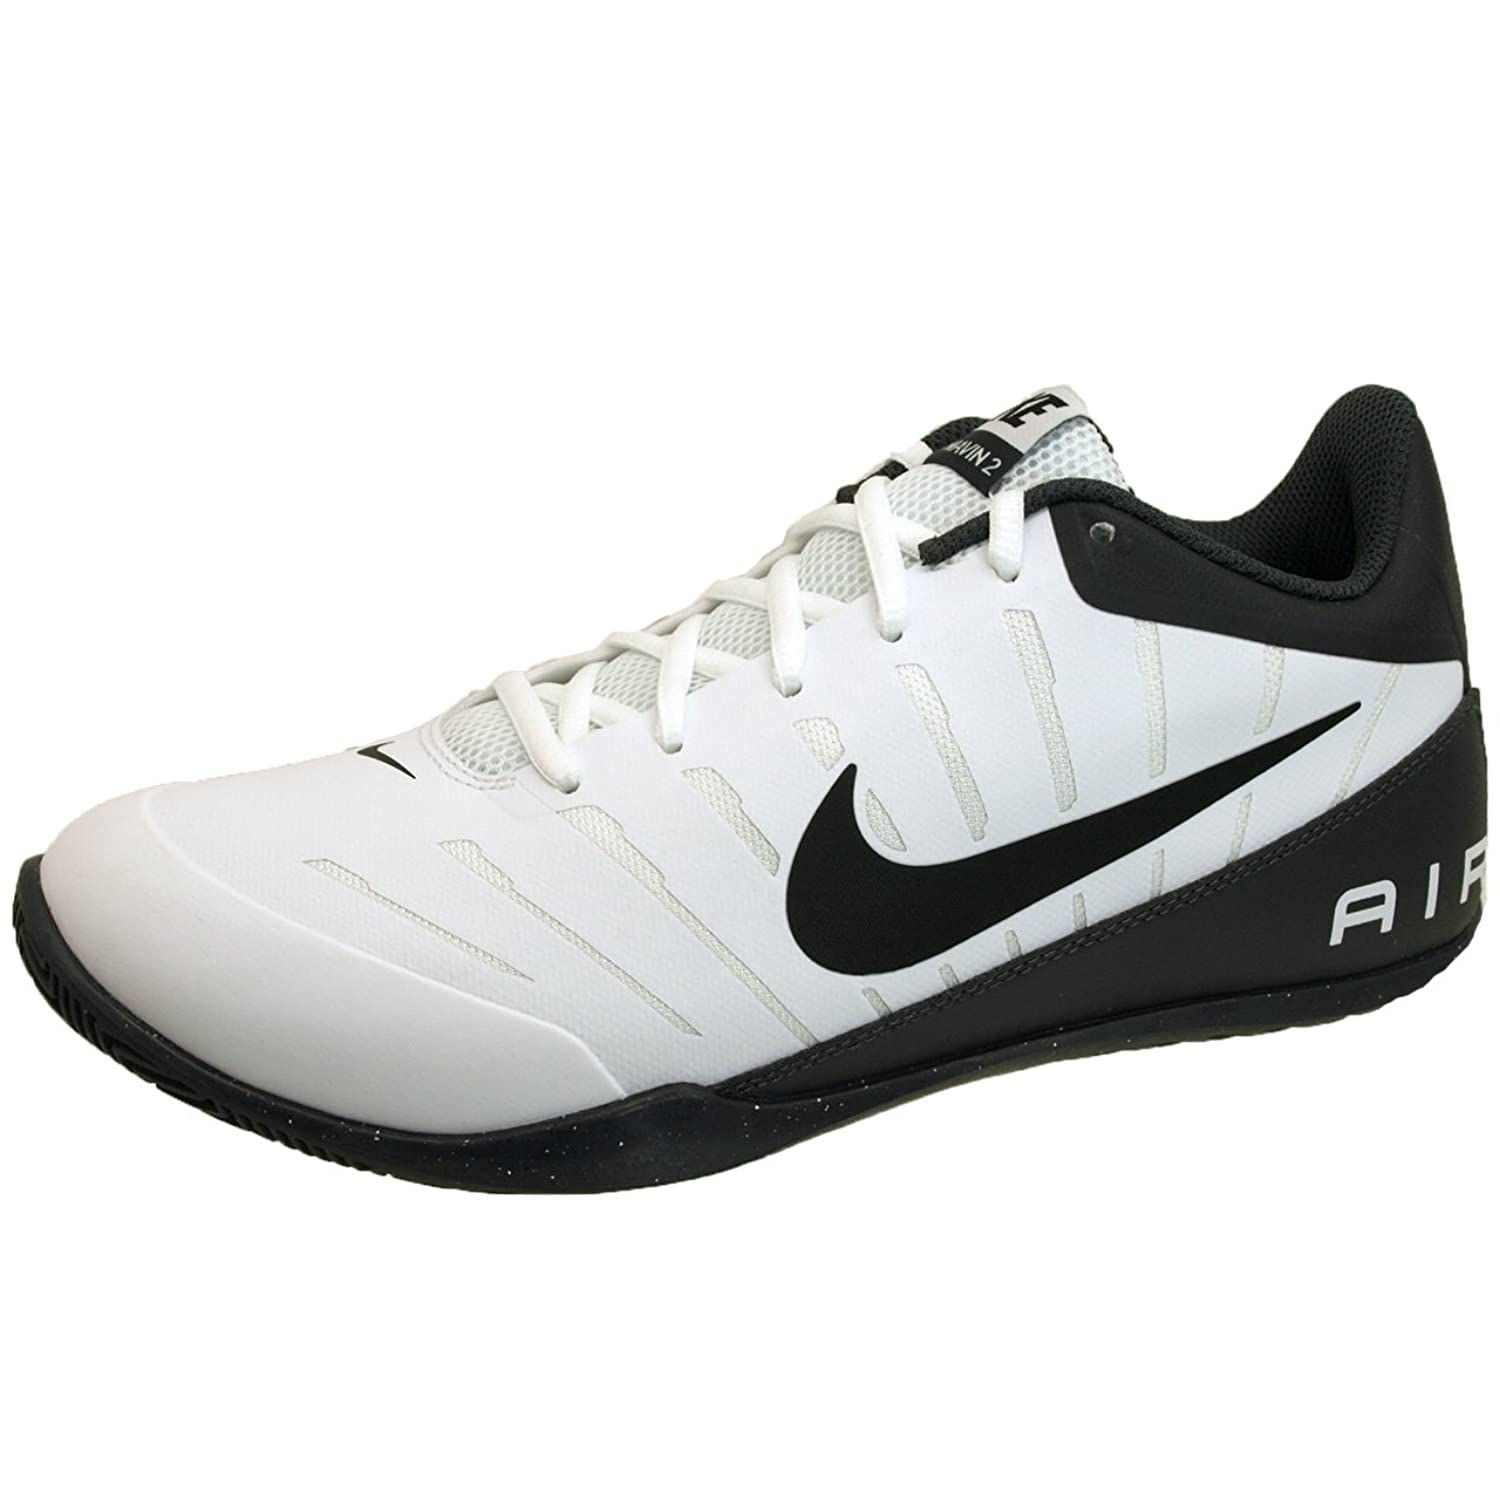 Chaussures Nike Air Mavin Low II Whiteuniversity Redblackwolf Grey cfZG9X3